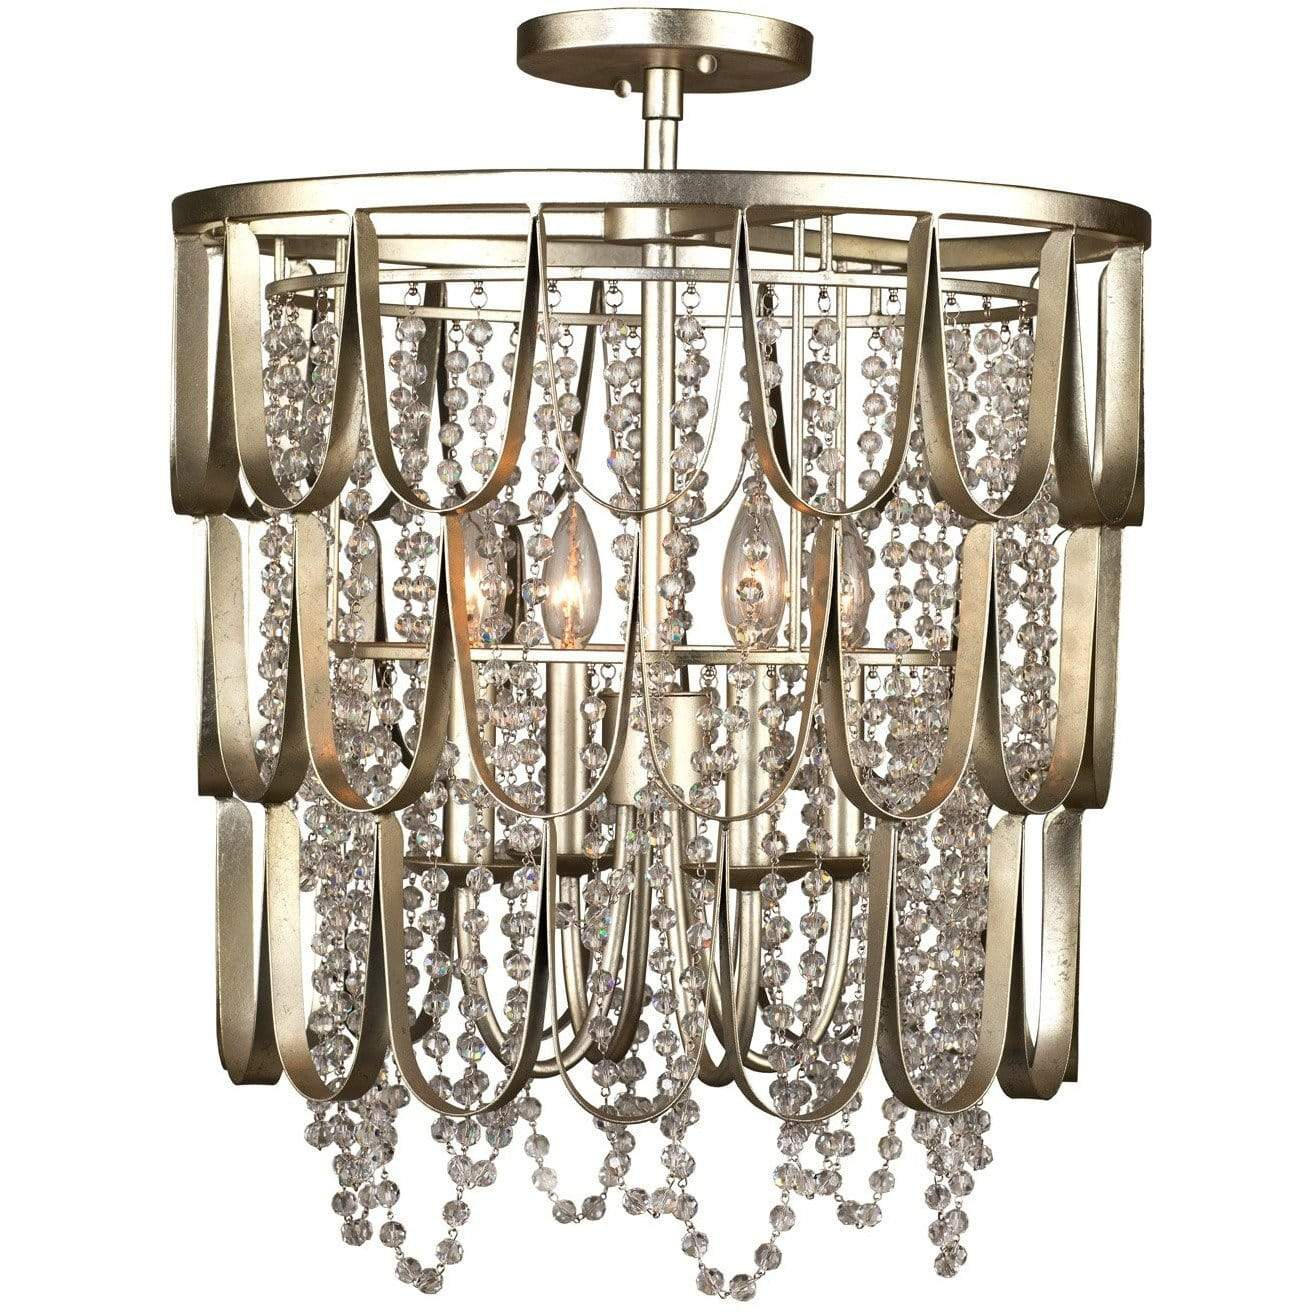 Kalco Lighting Pendants Champagne Silver Leaf Dulce 18 Inch Convertible Pendant / Semi Flush By Kalco Lighting 508840